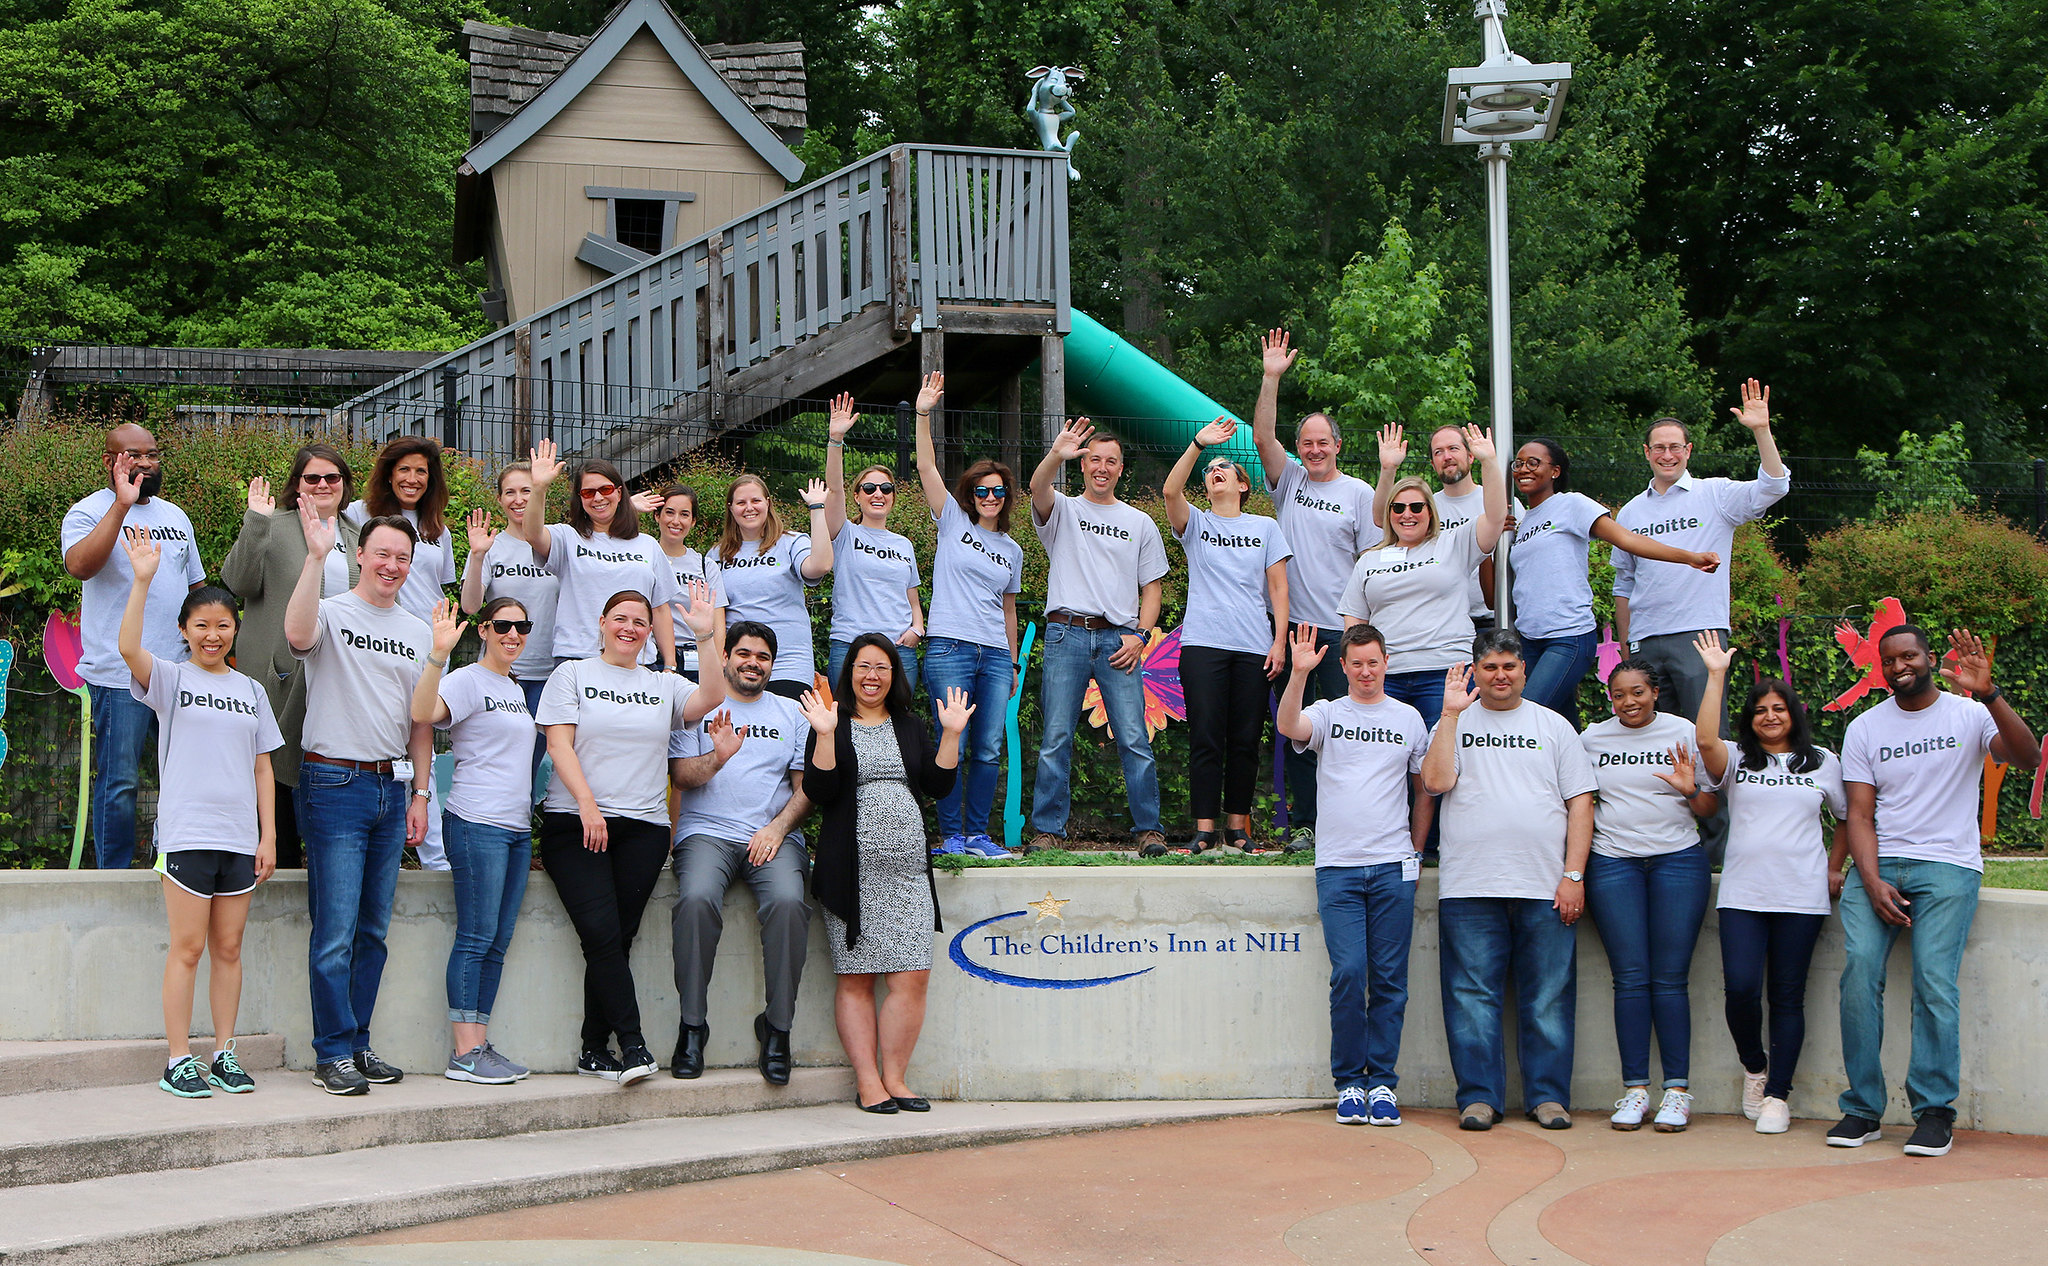 Deloitte group - service day